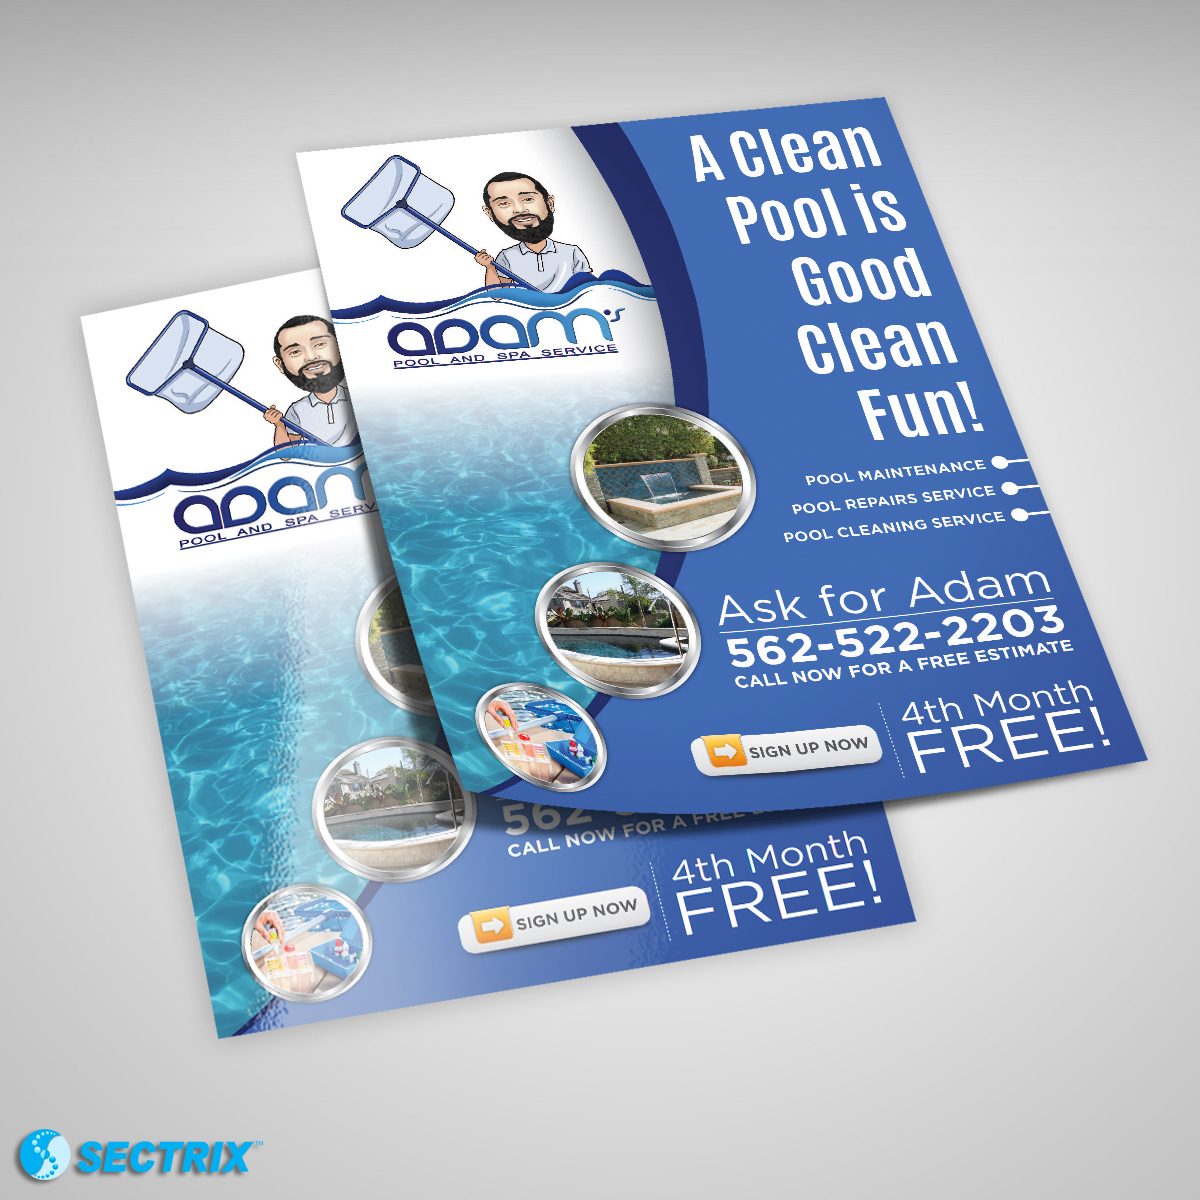 Adam Pool and Spa Services SECTRIX Graphic Design Services IT